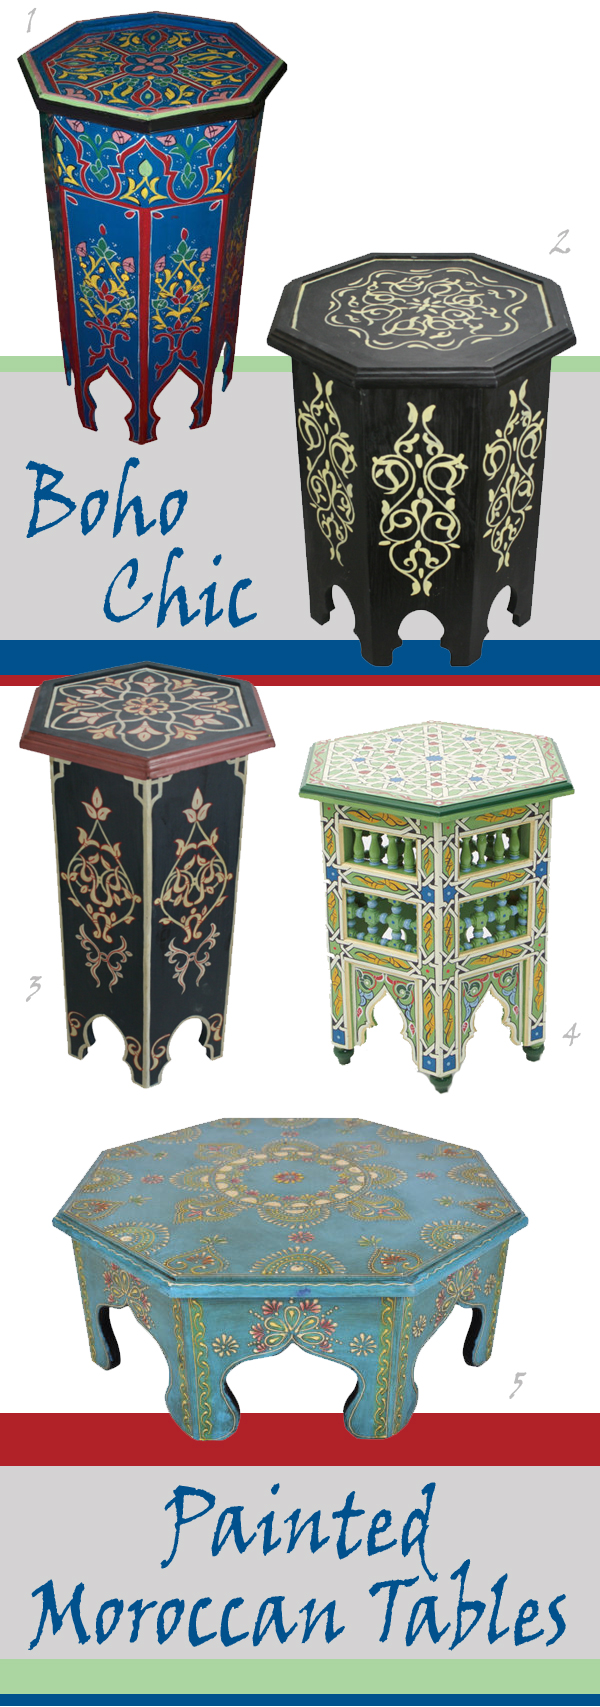 Bohemian Chic Painted Moroccan Tables